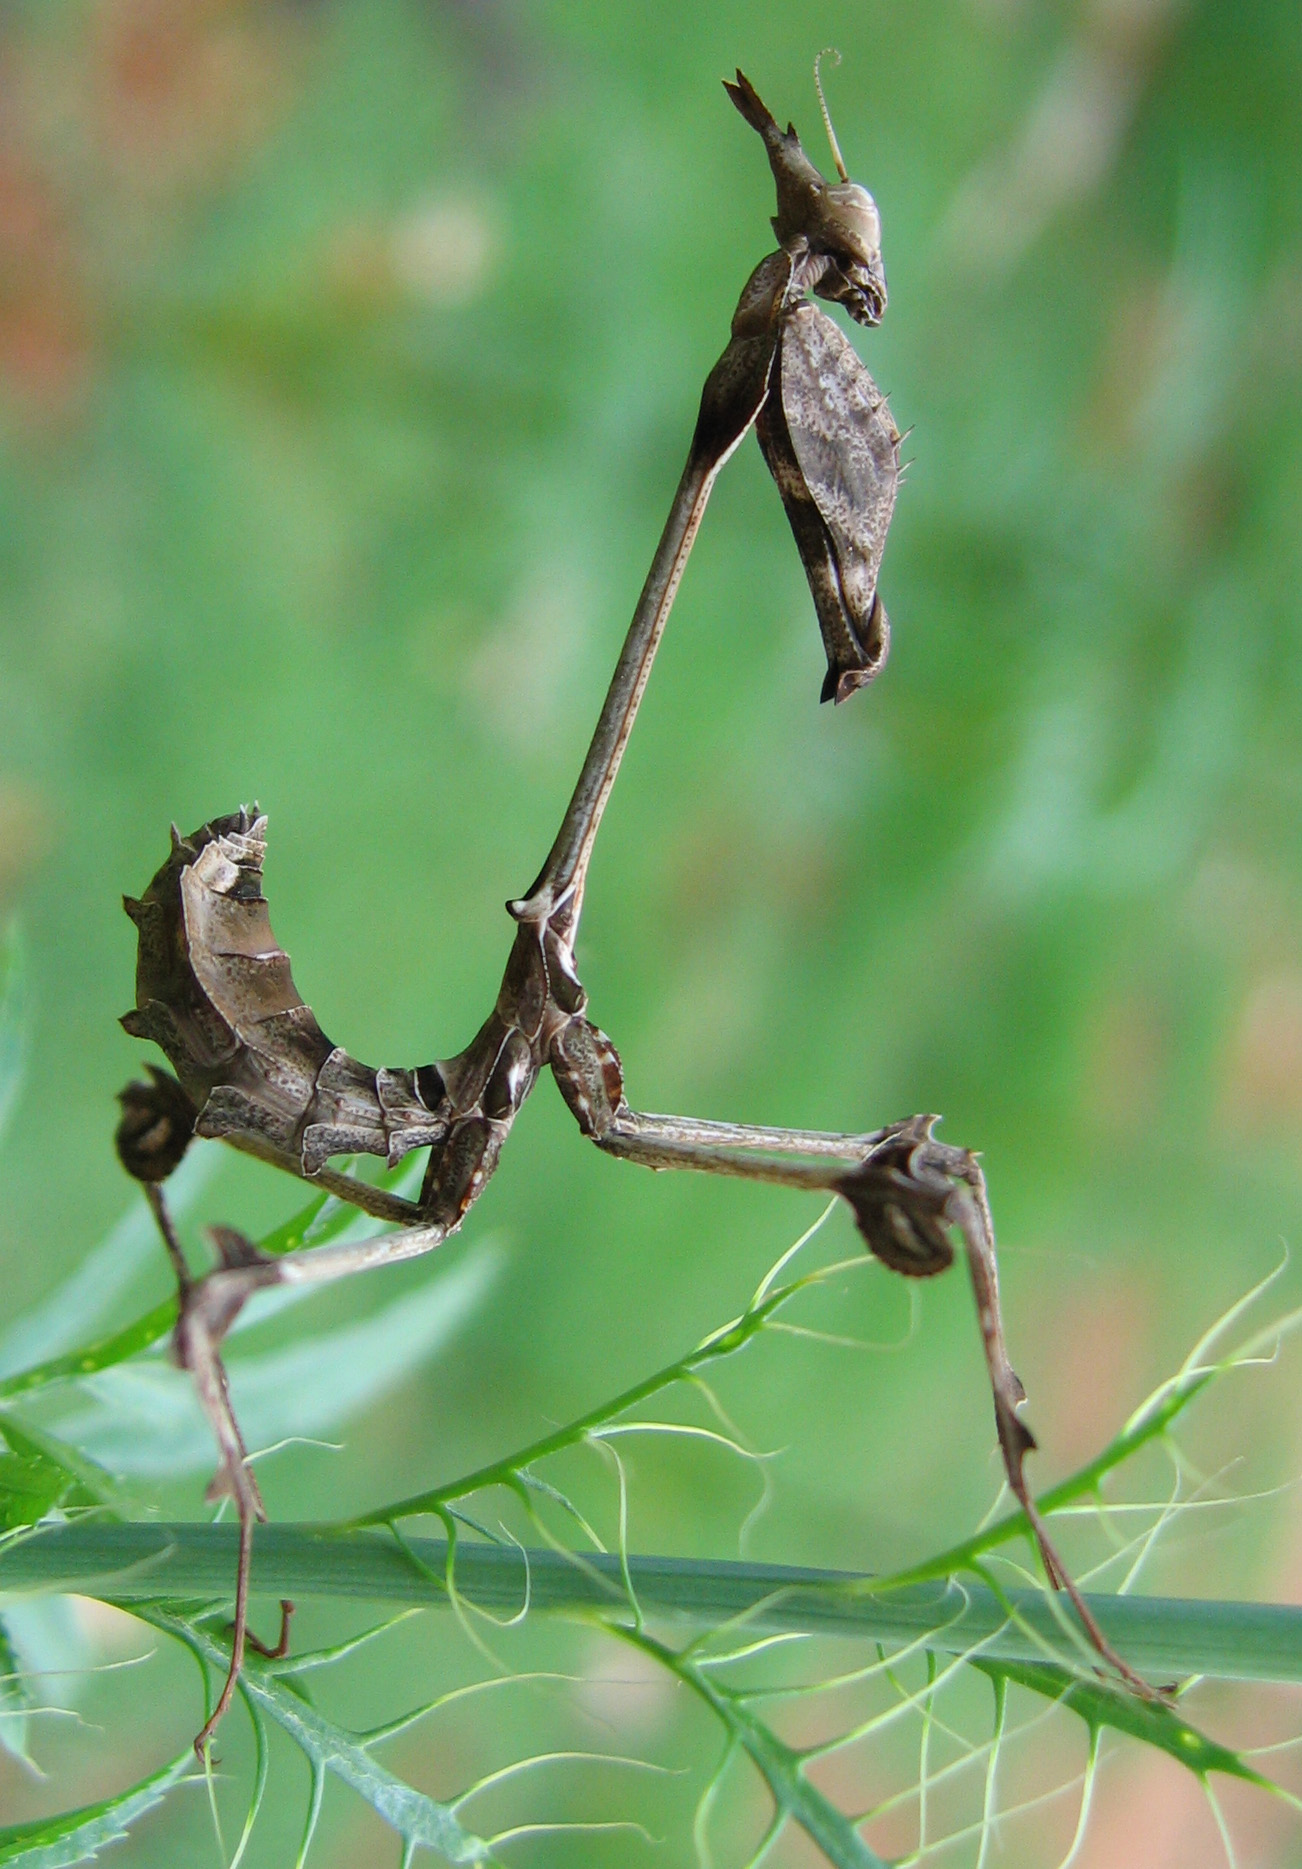 an introduction to the mantodea also known as the praying mantis Praying mantis, insect which holds mantis is the common name of any insect in the order mantodea, also commonly known as praying mantises.